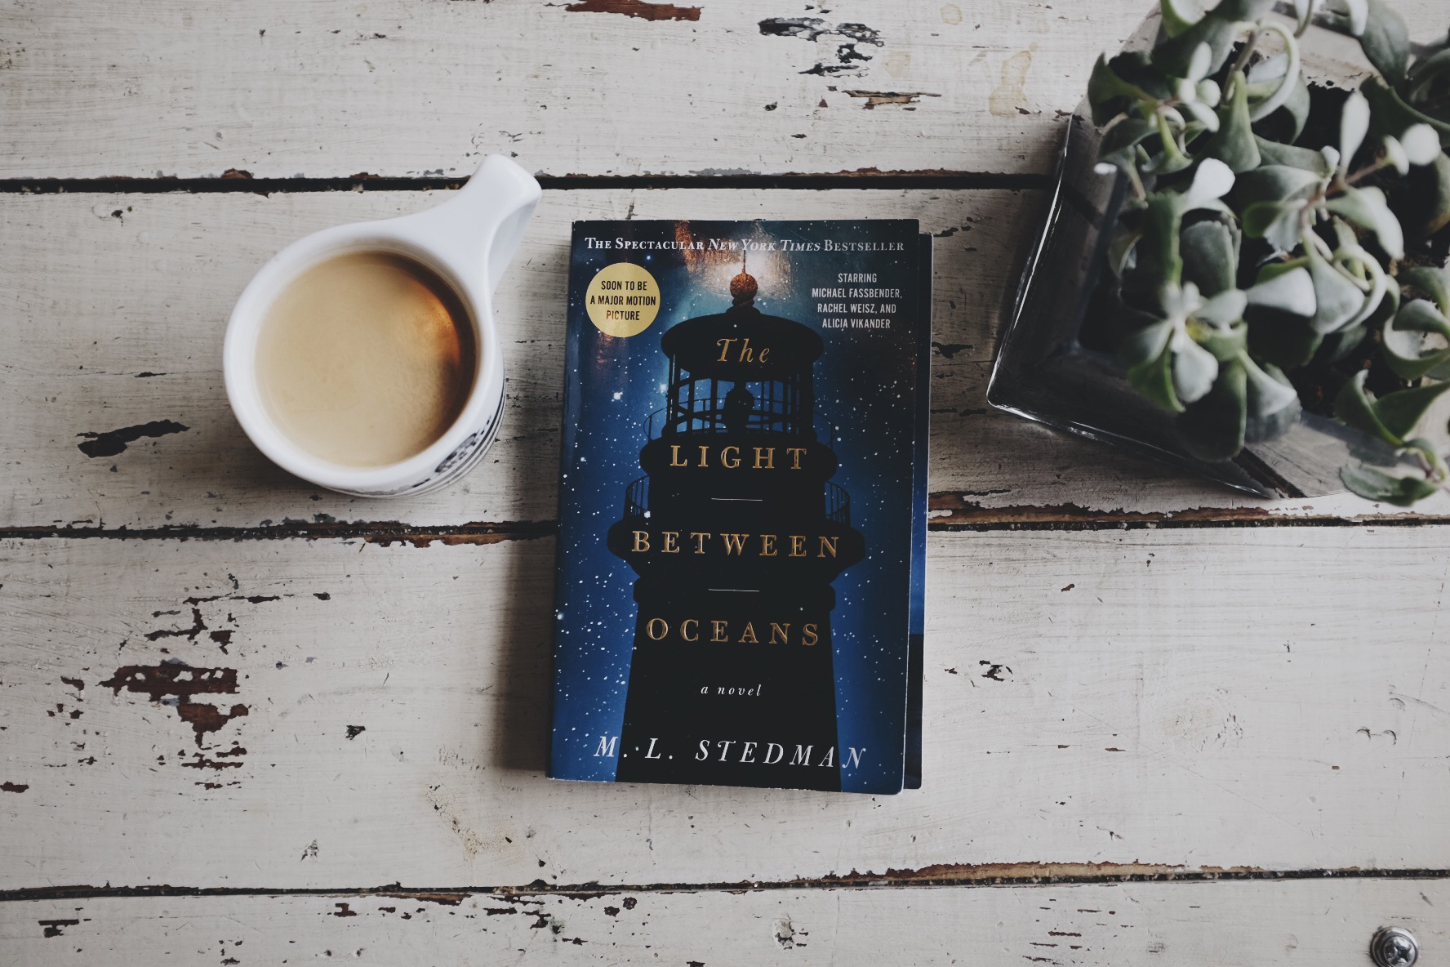 Light Between the Oceans by M.L. Stedman